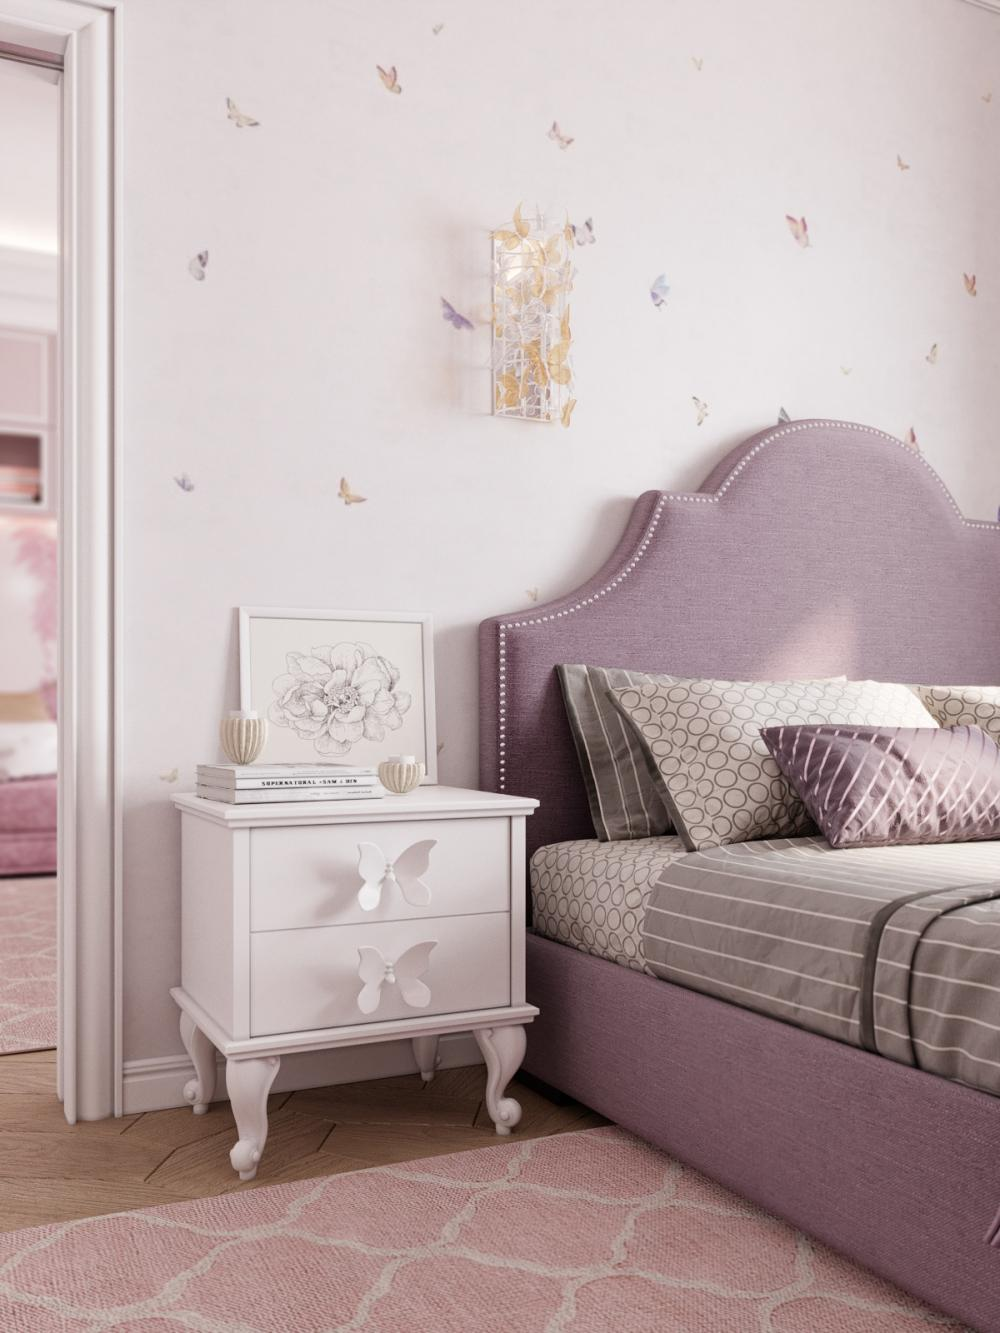 Best ideas on how to decorate your little daughter's room